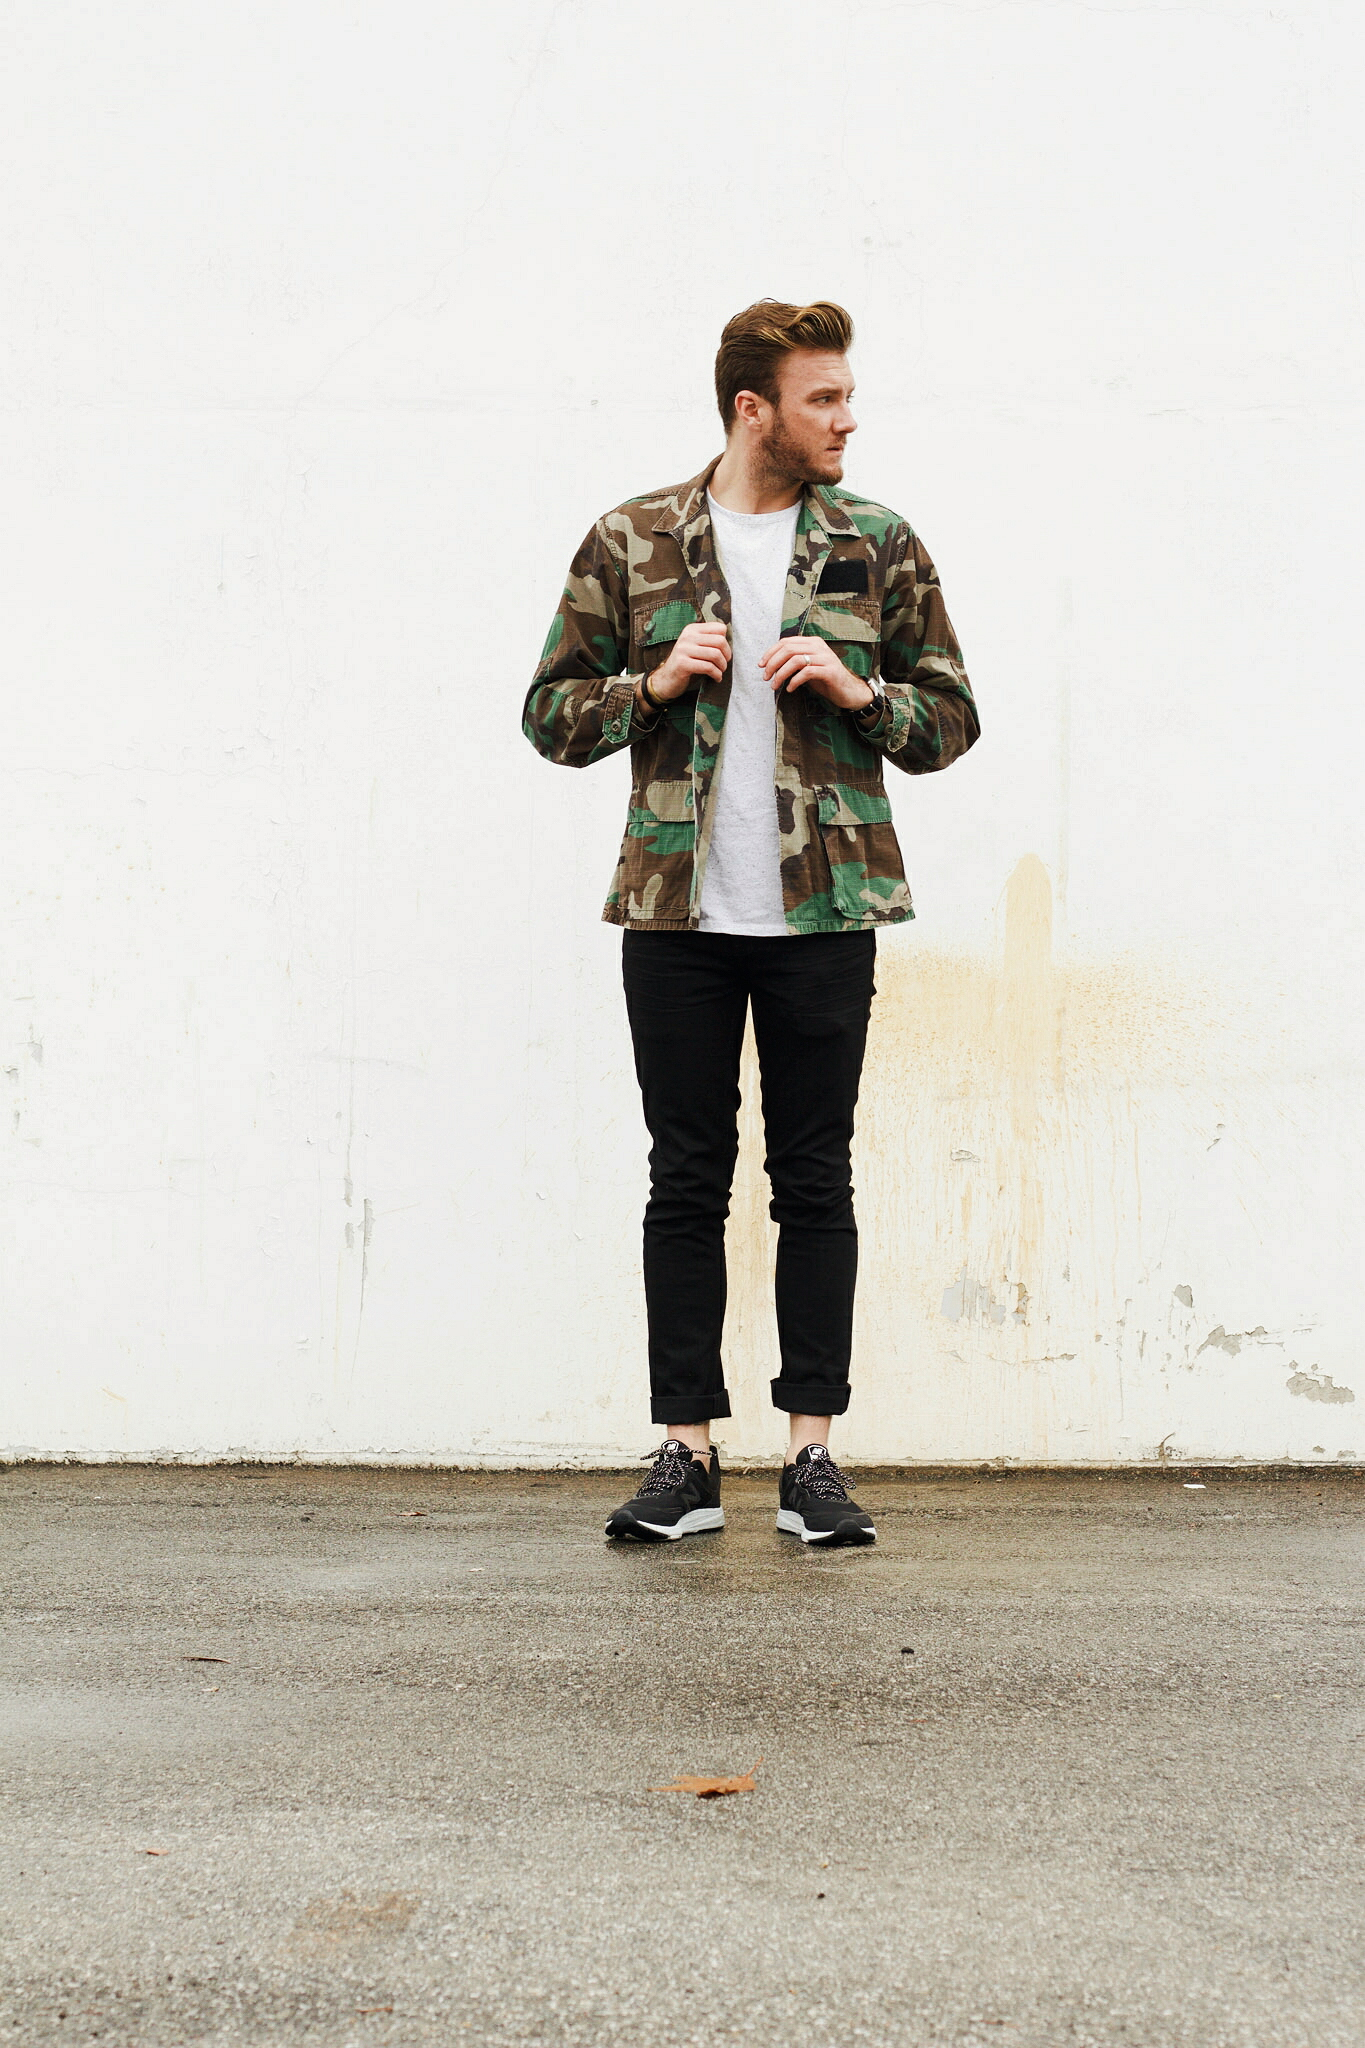 Vintage Camo Jacket and Sneakers 2